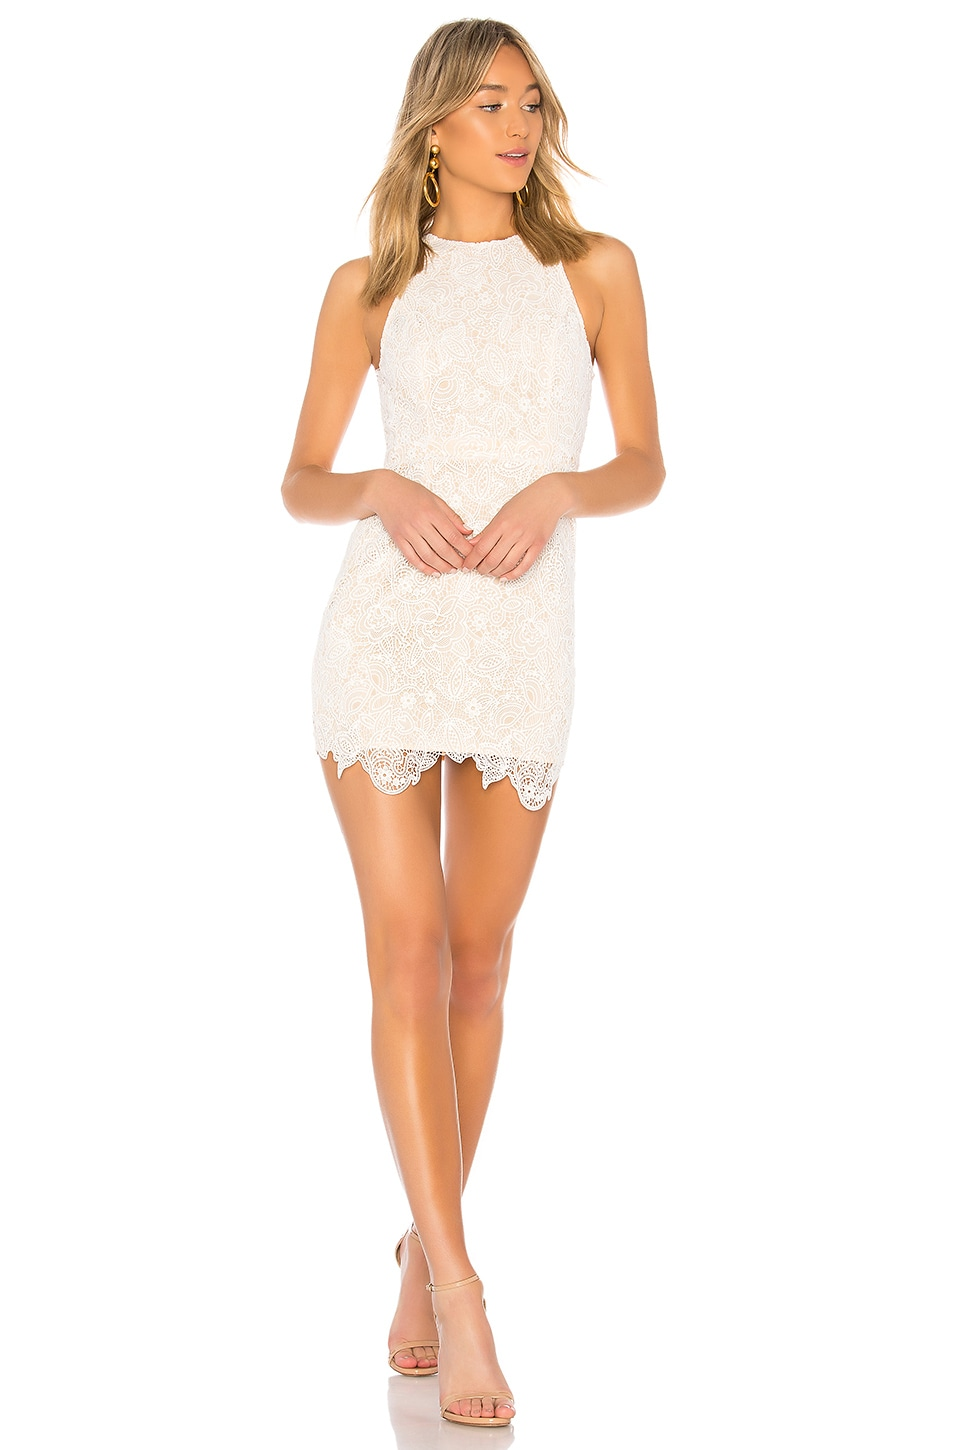 Patty High Neck Crochet Dress             superdown                                                                                                       CA$ 107.51 1